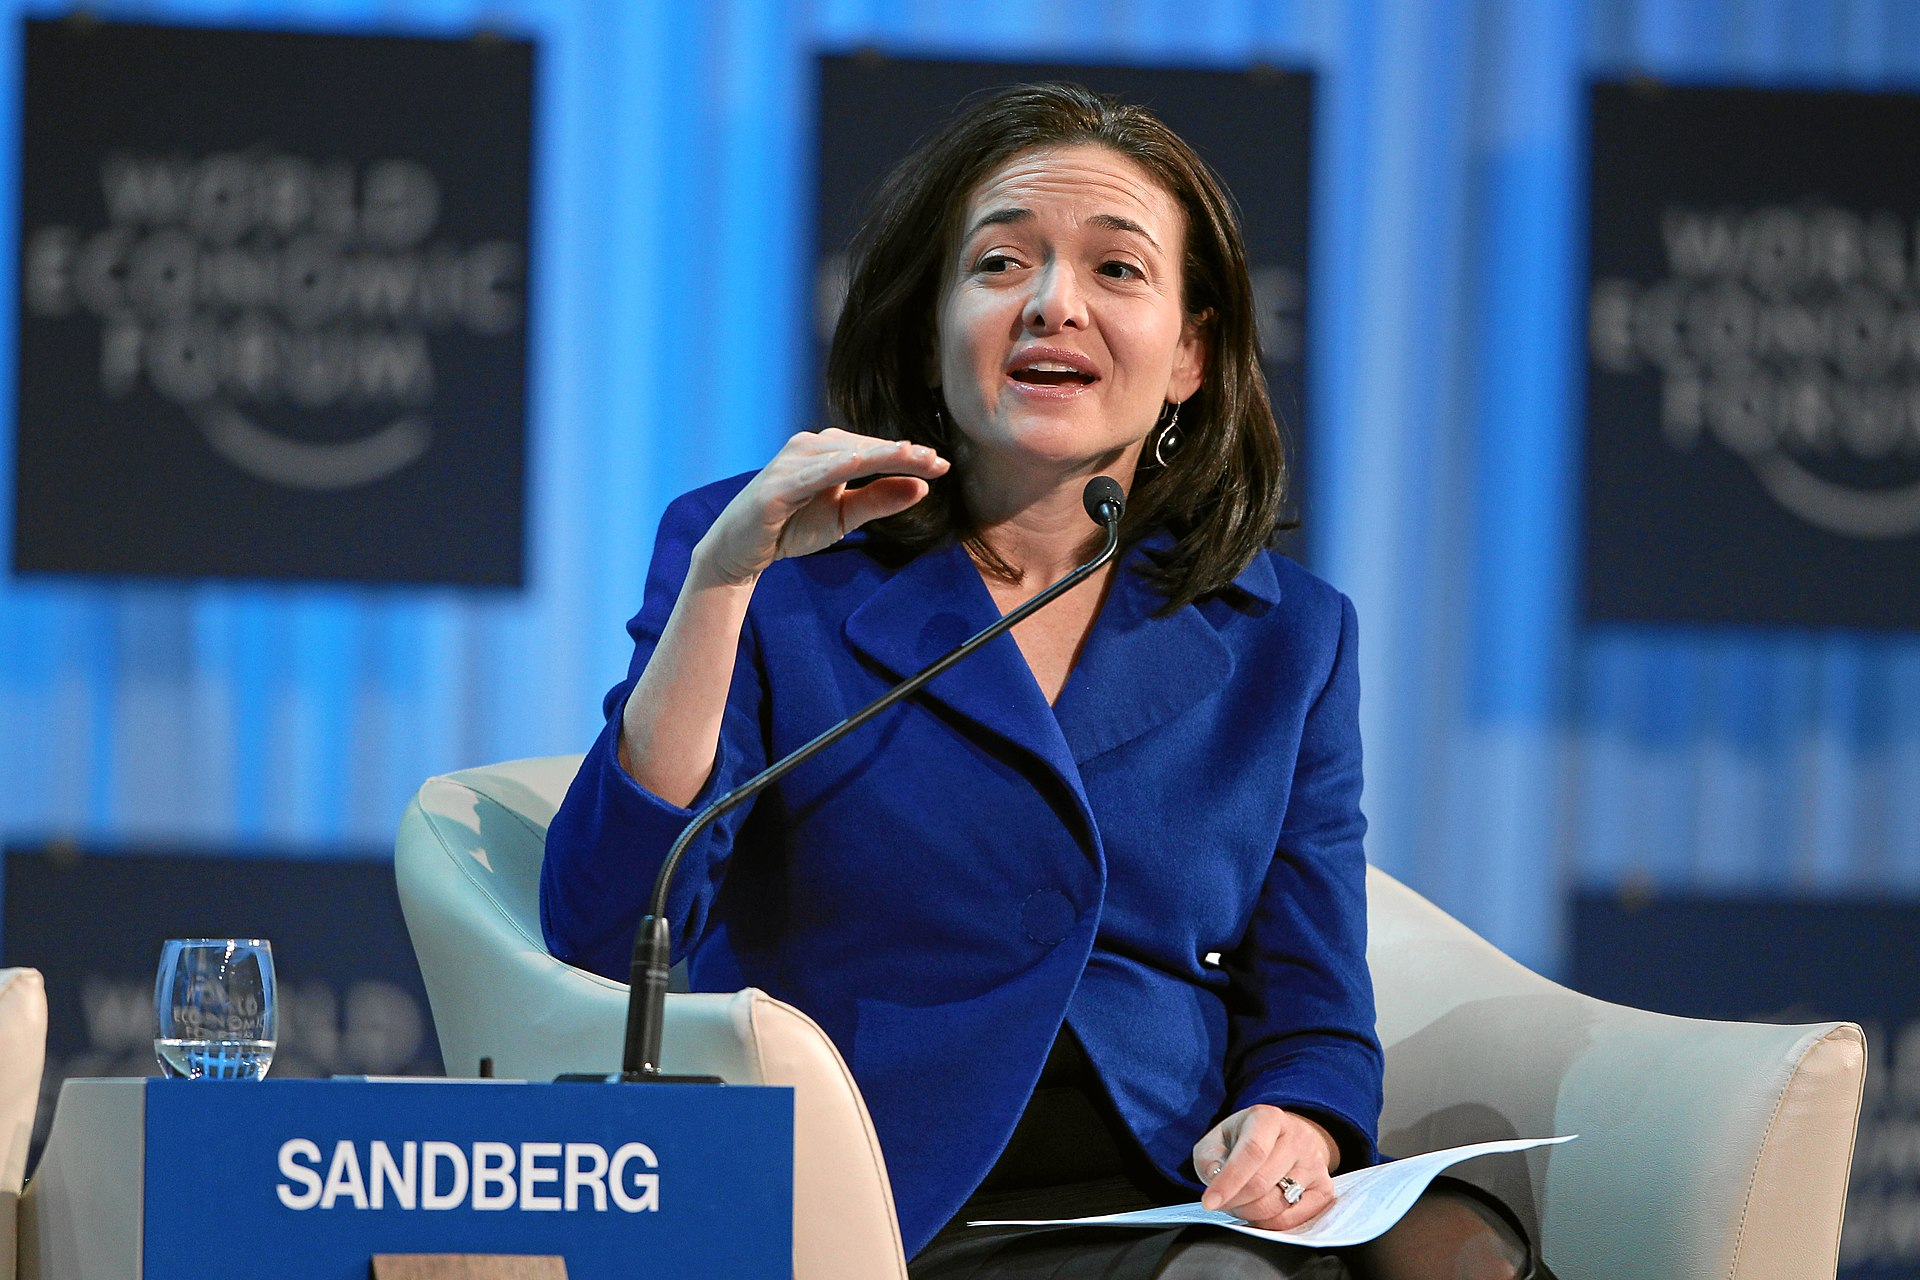 sandberg_facebook_women_executives